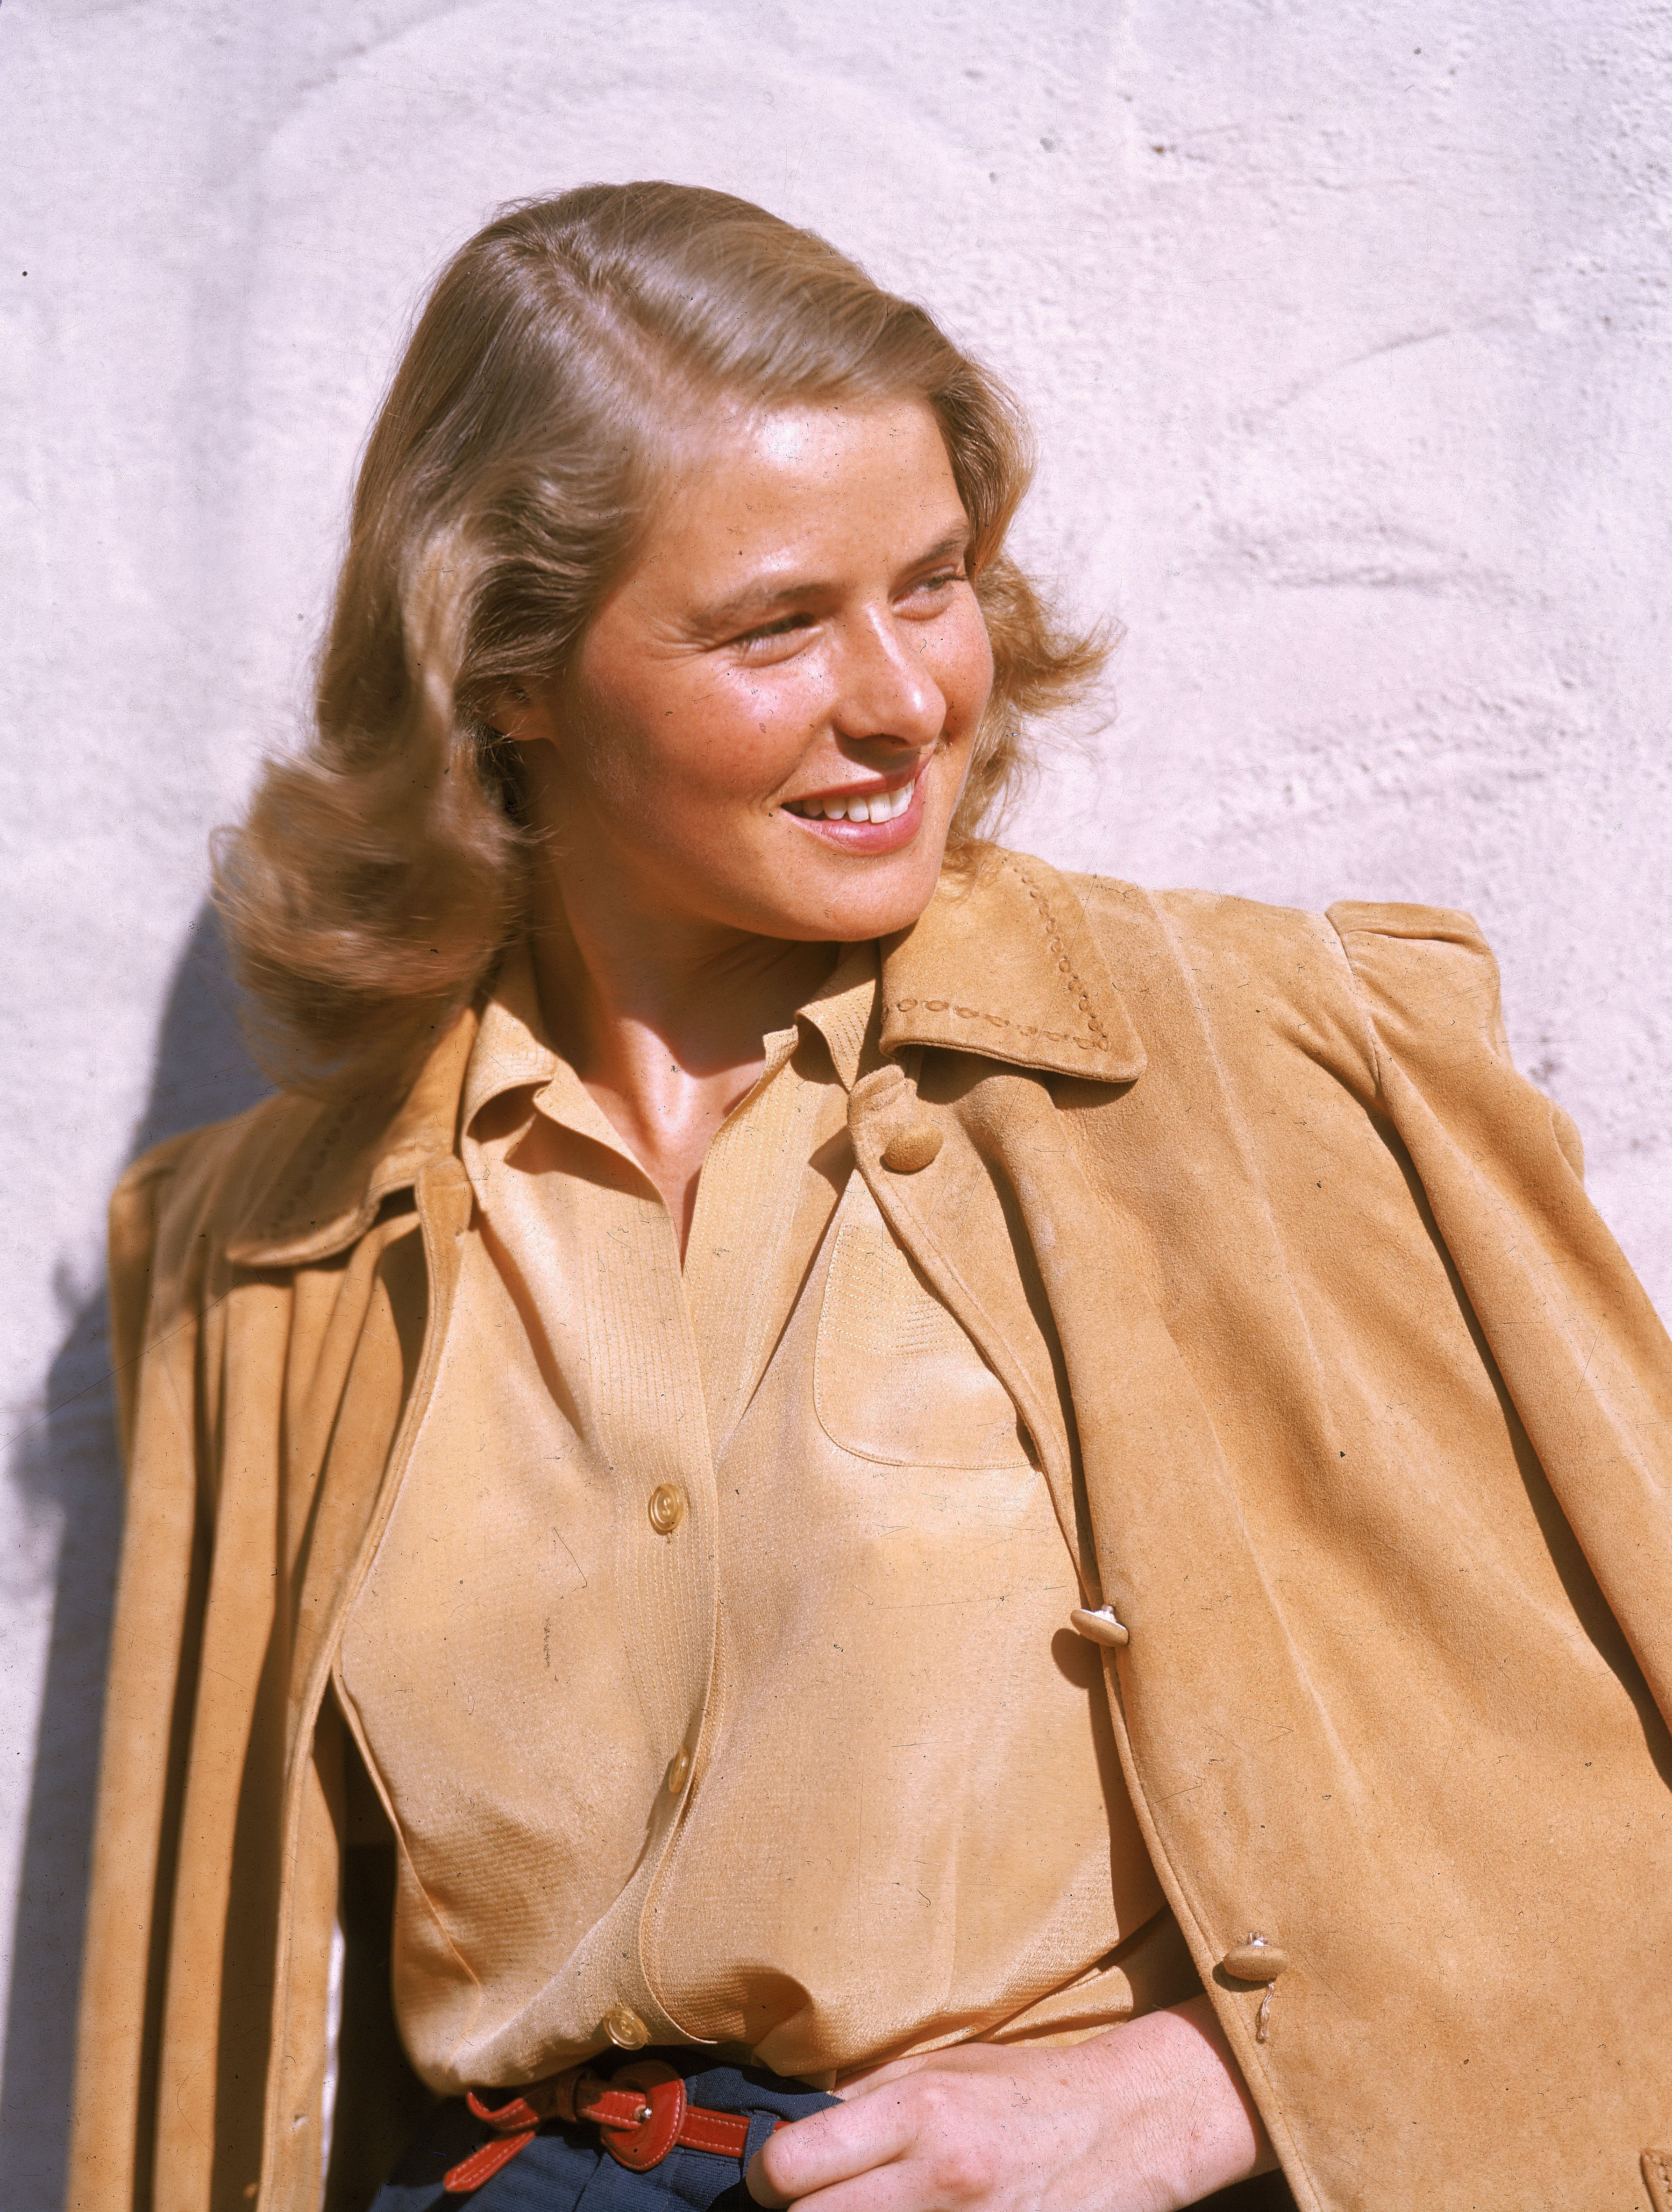 Ingrid Bergman poses outdoors in a tan leather jacket, circa 1945. | Source: Getty Images